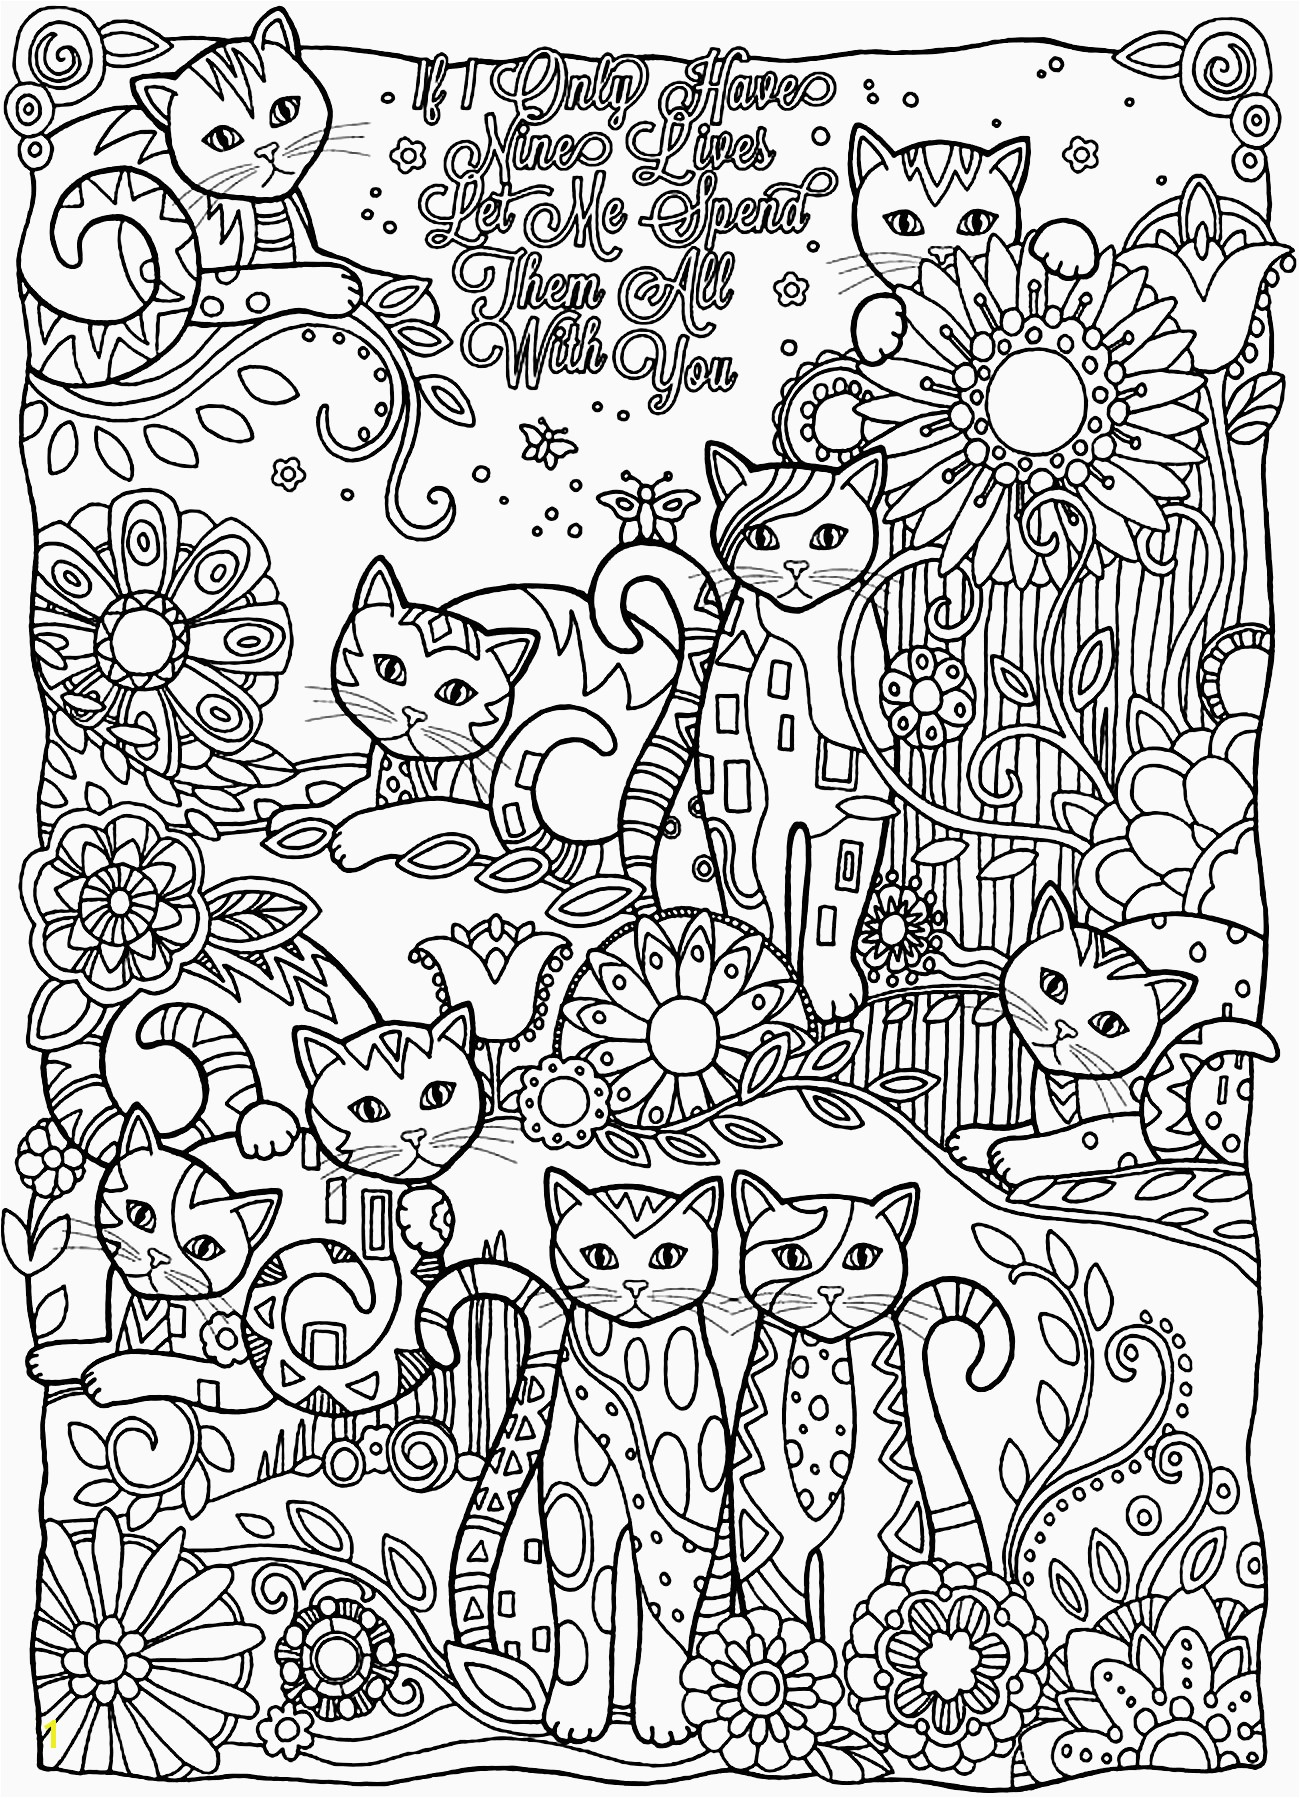 Cute Printable Coloring Pages New Printable Od Dog Coloring Pages